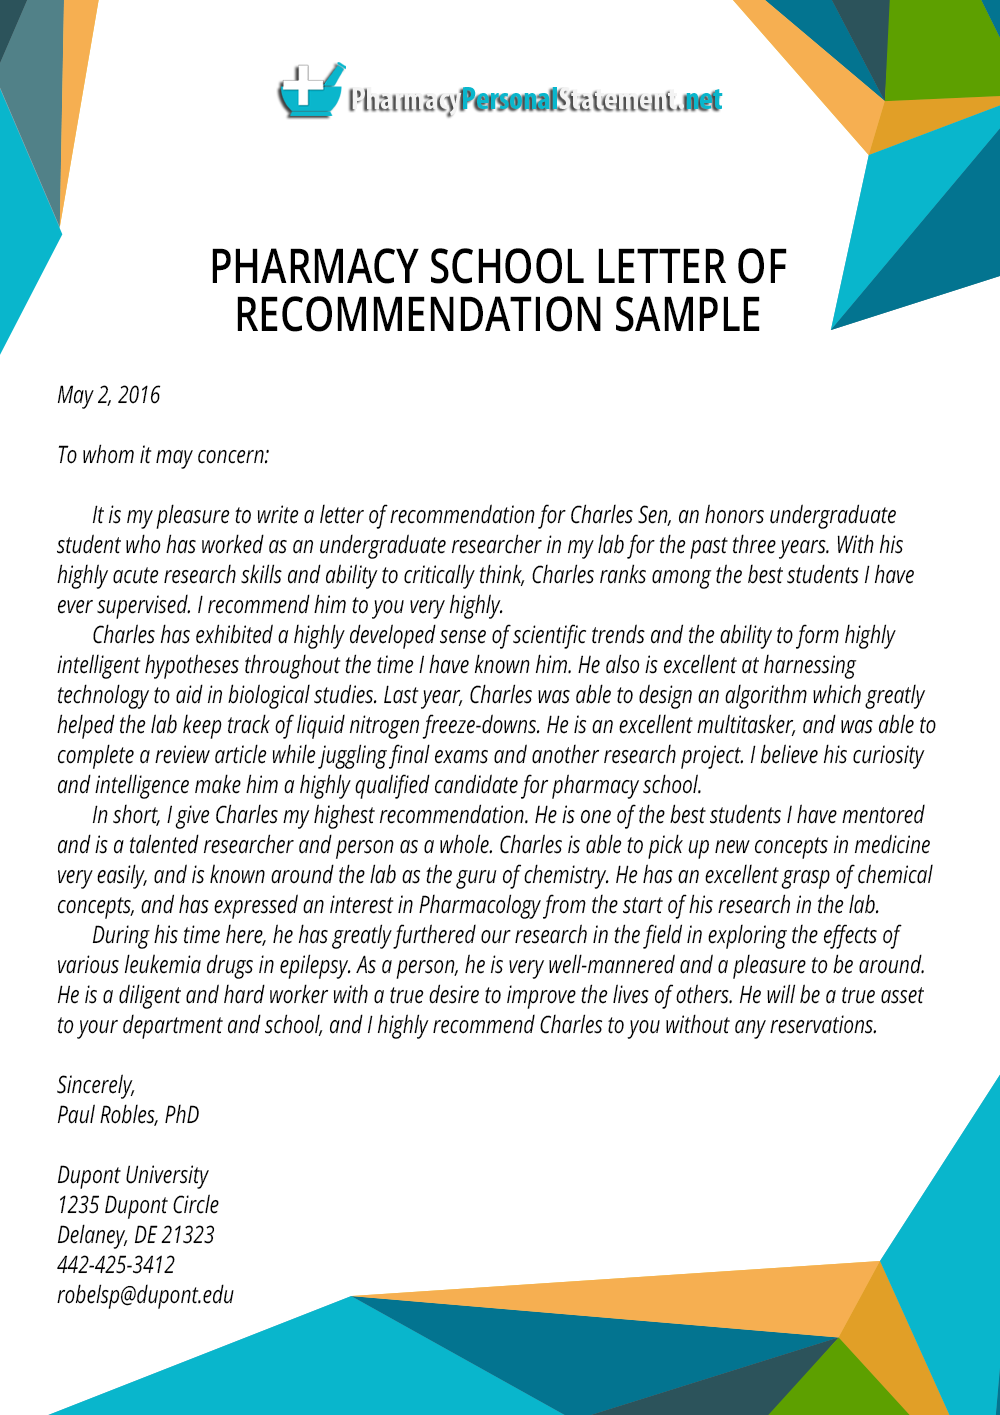 Medical School Resume Httpwwwpharmacypersonalstatementourpharmacyschool